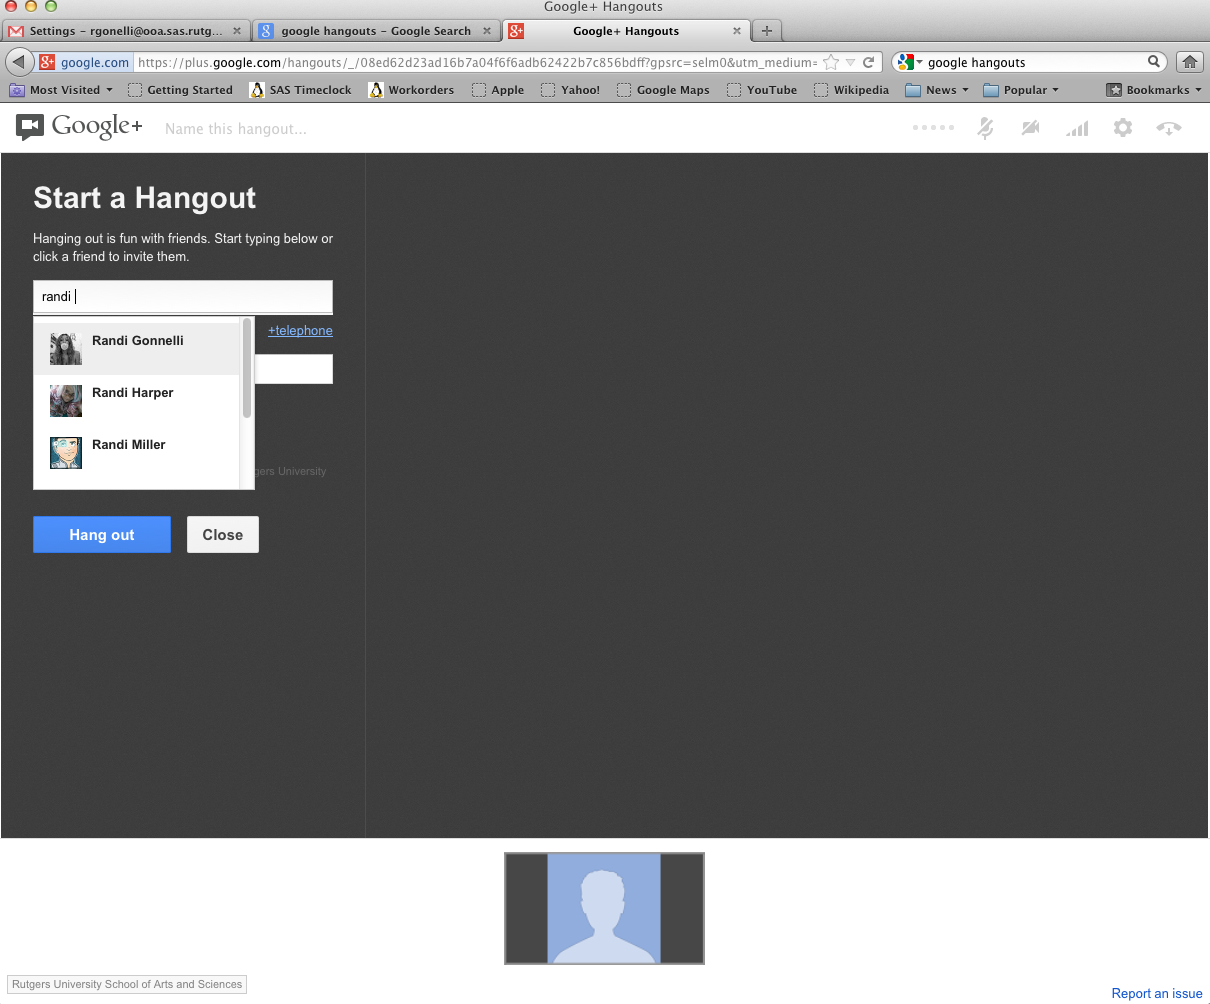 Start Hangout Page screenshot: Invite people to hangout by typing names into the search bar on the left